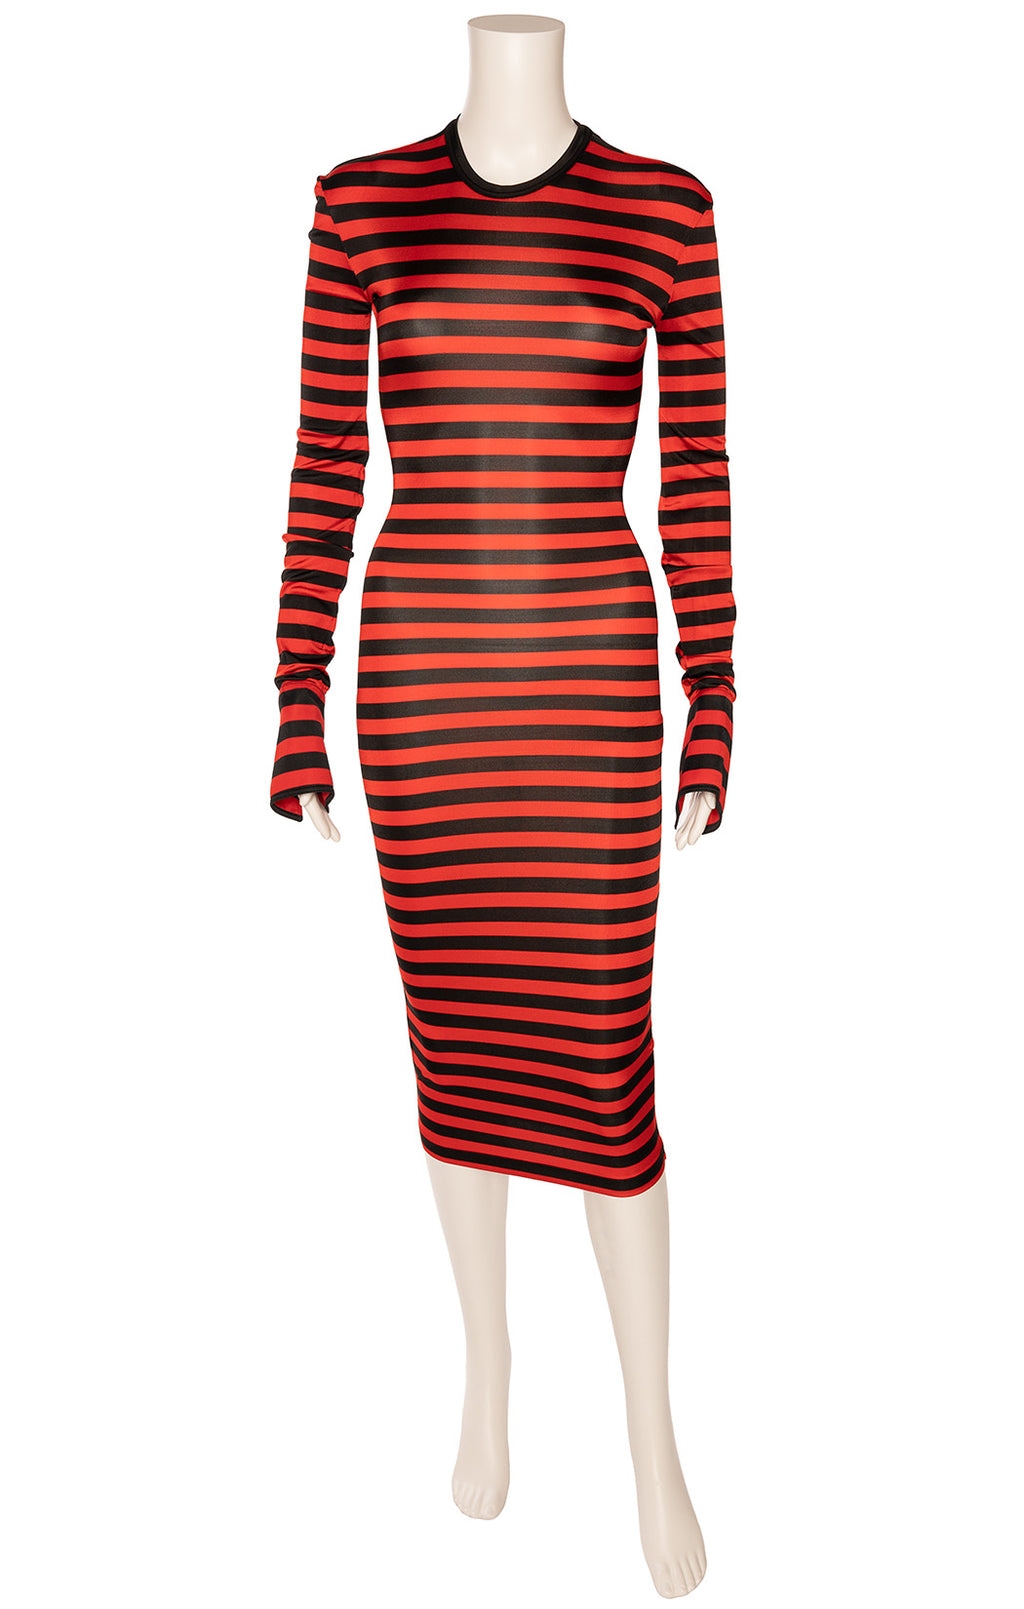 Red s d navy stripe midi dress with trumpet like cuff And button decoration